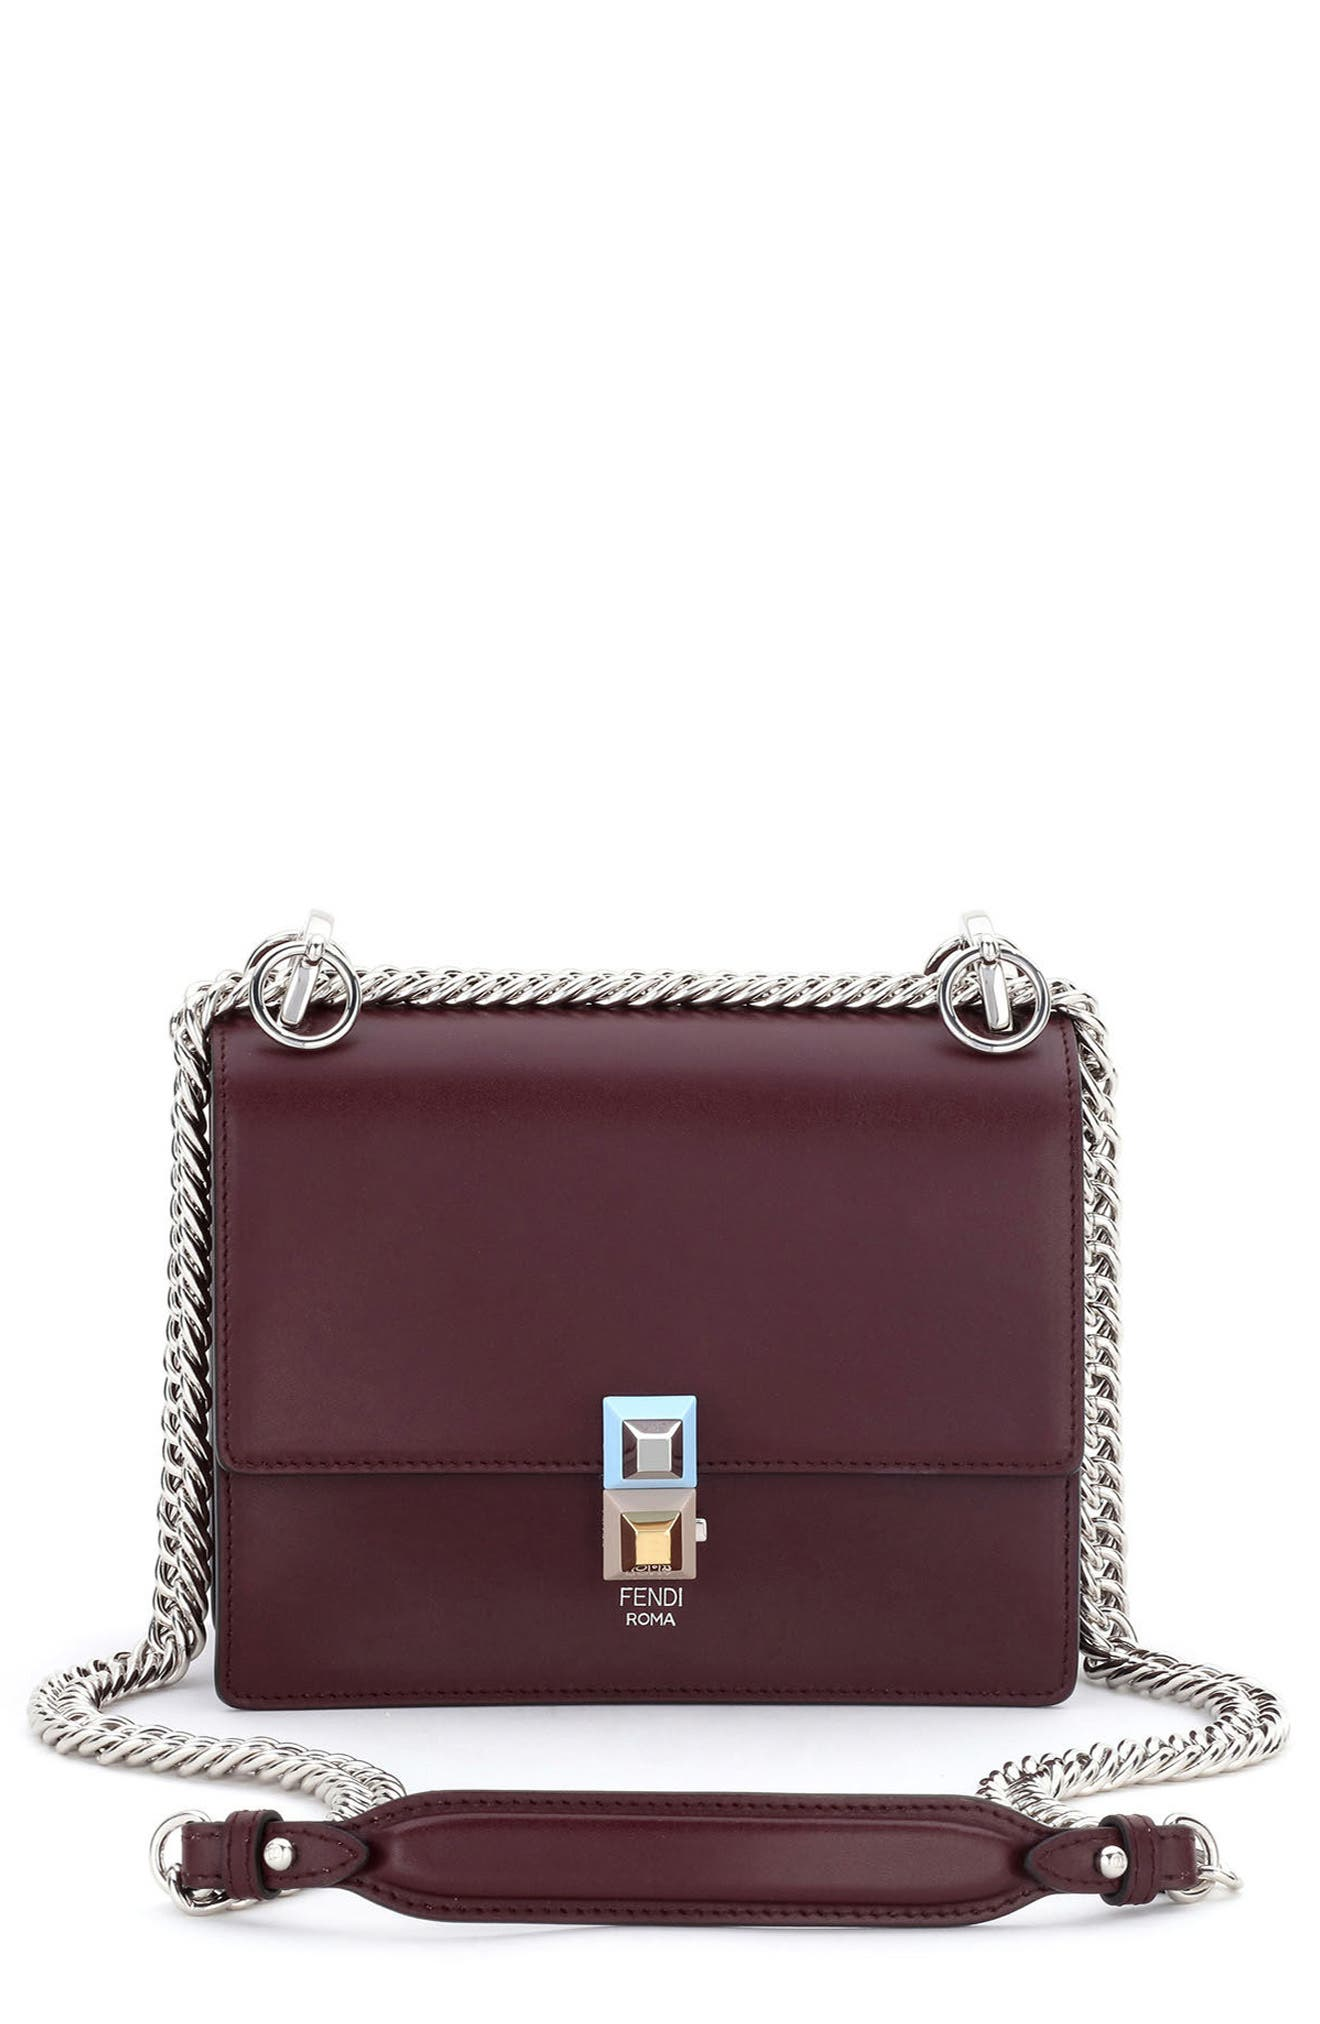 Alternate Image 1 Selected - Fendi Small Kan I Leather Bag